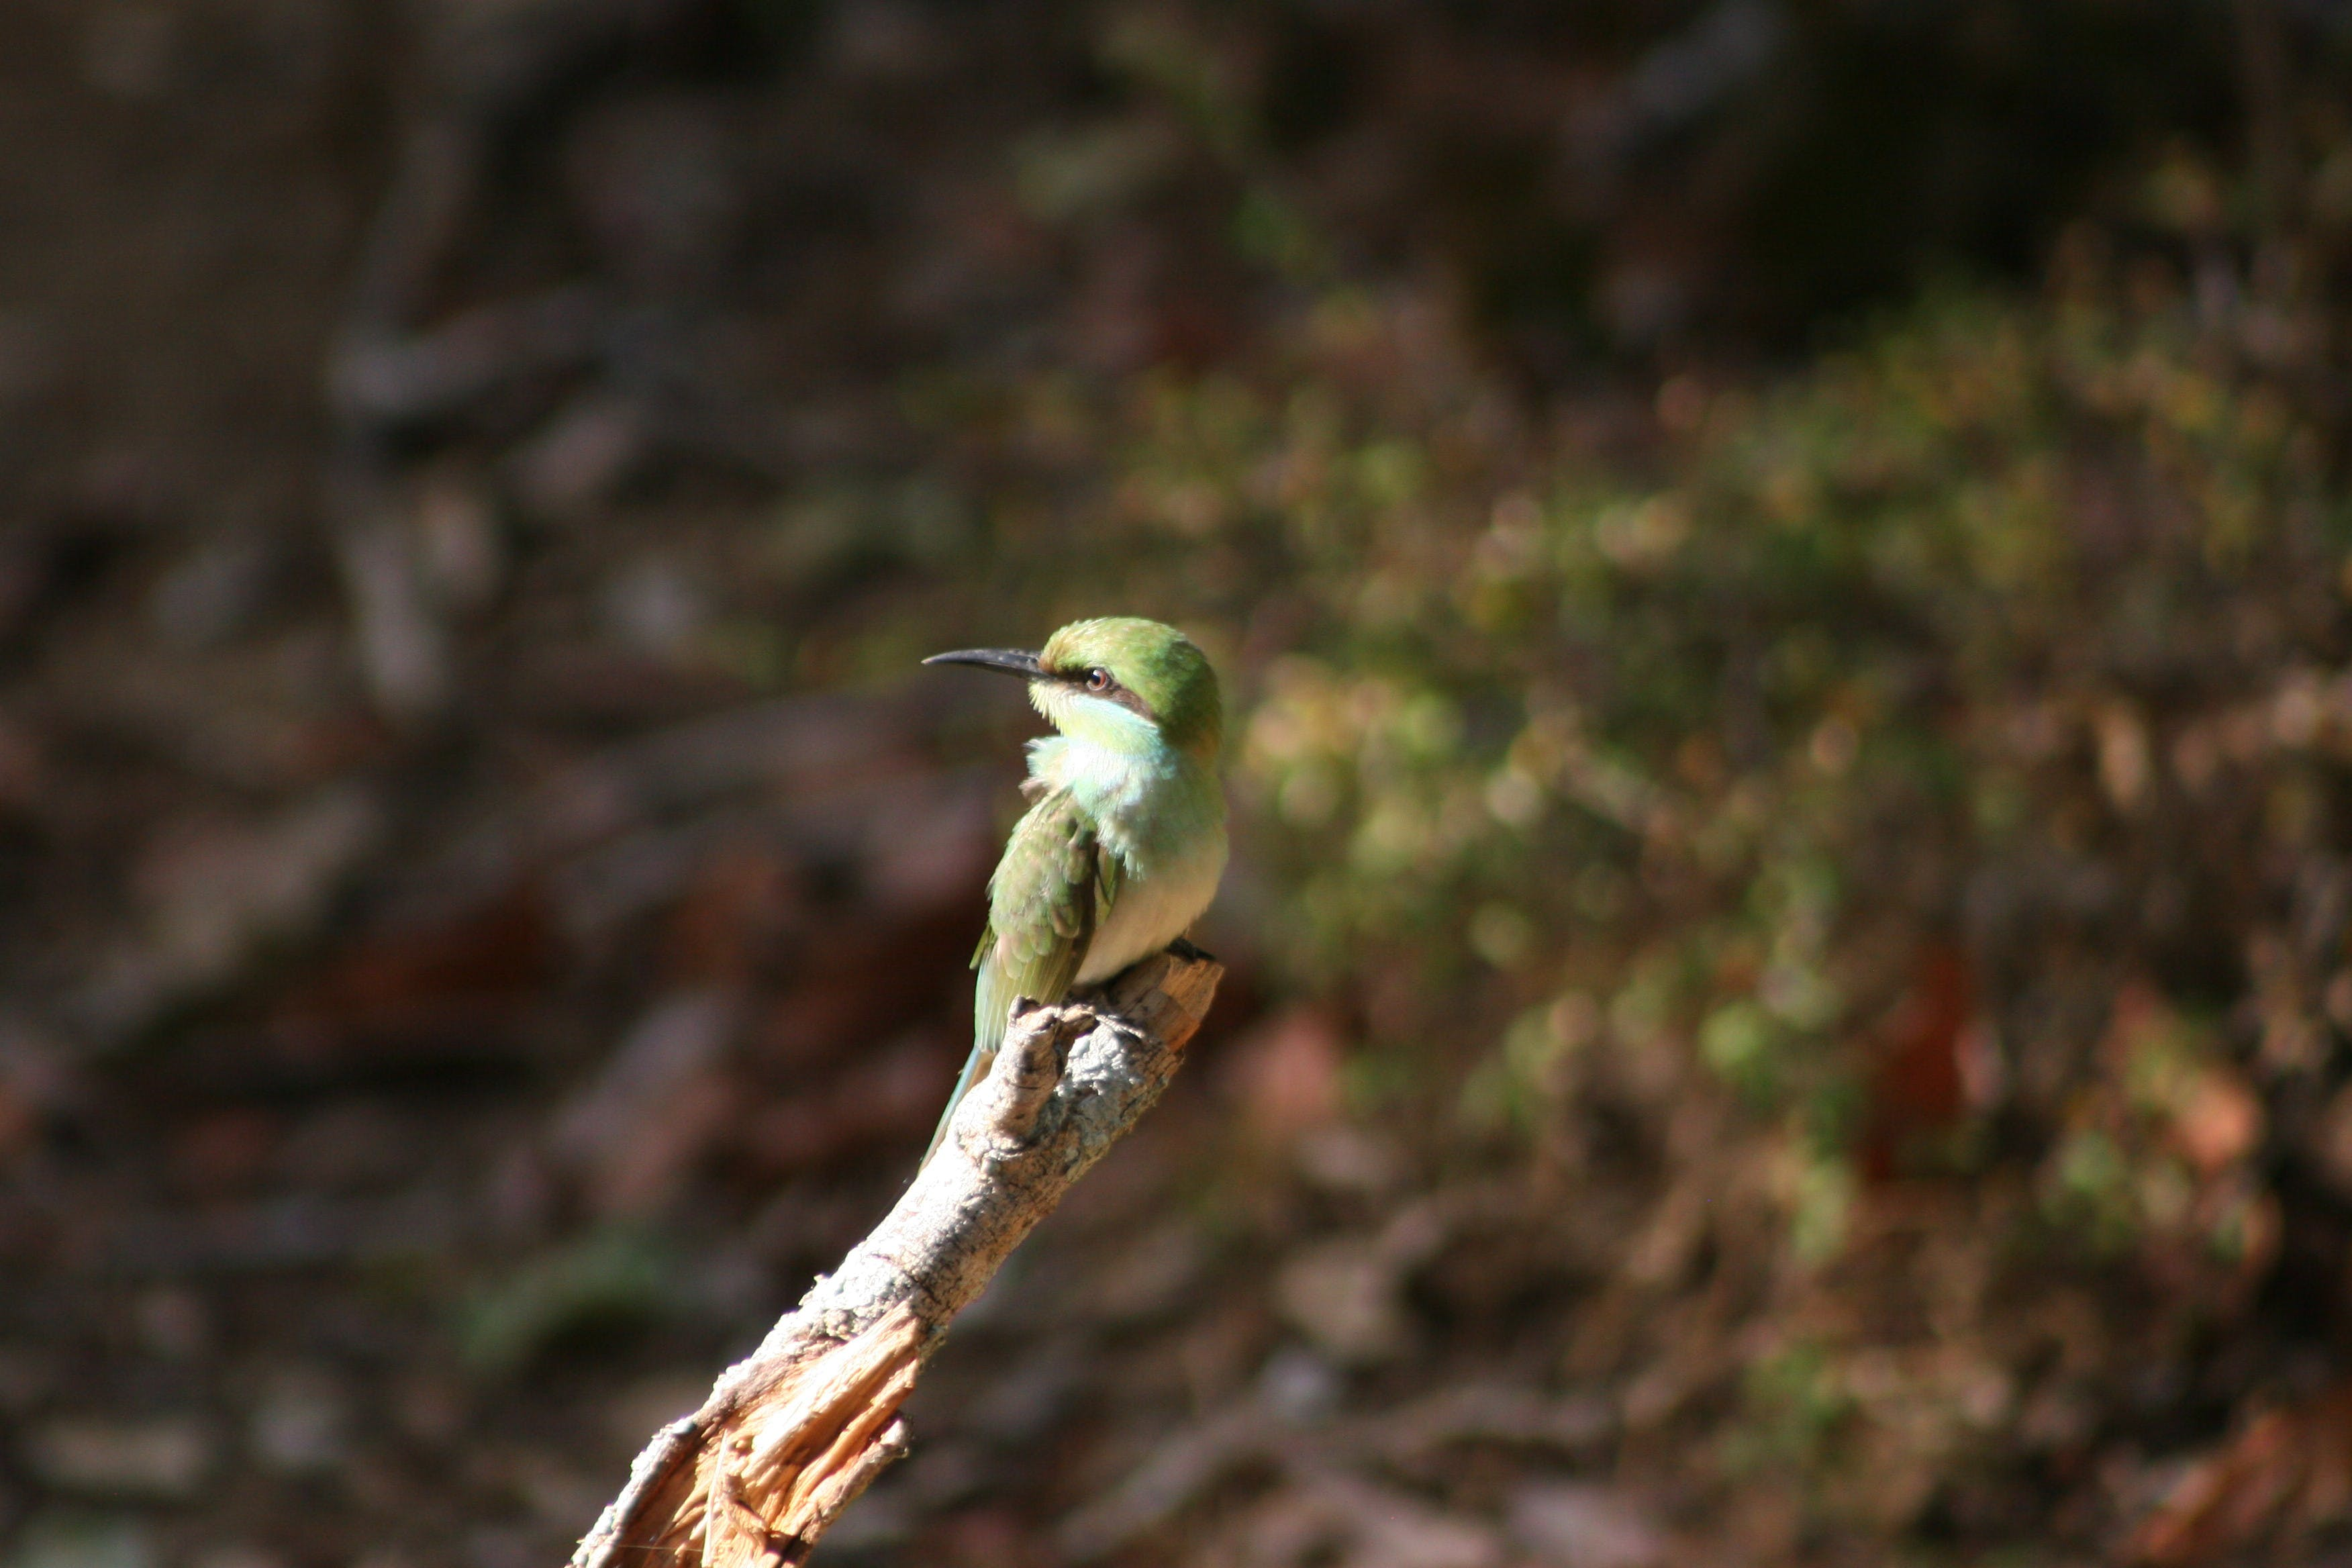 Green Long-beak Bird on Brown Wooden Tree Branch